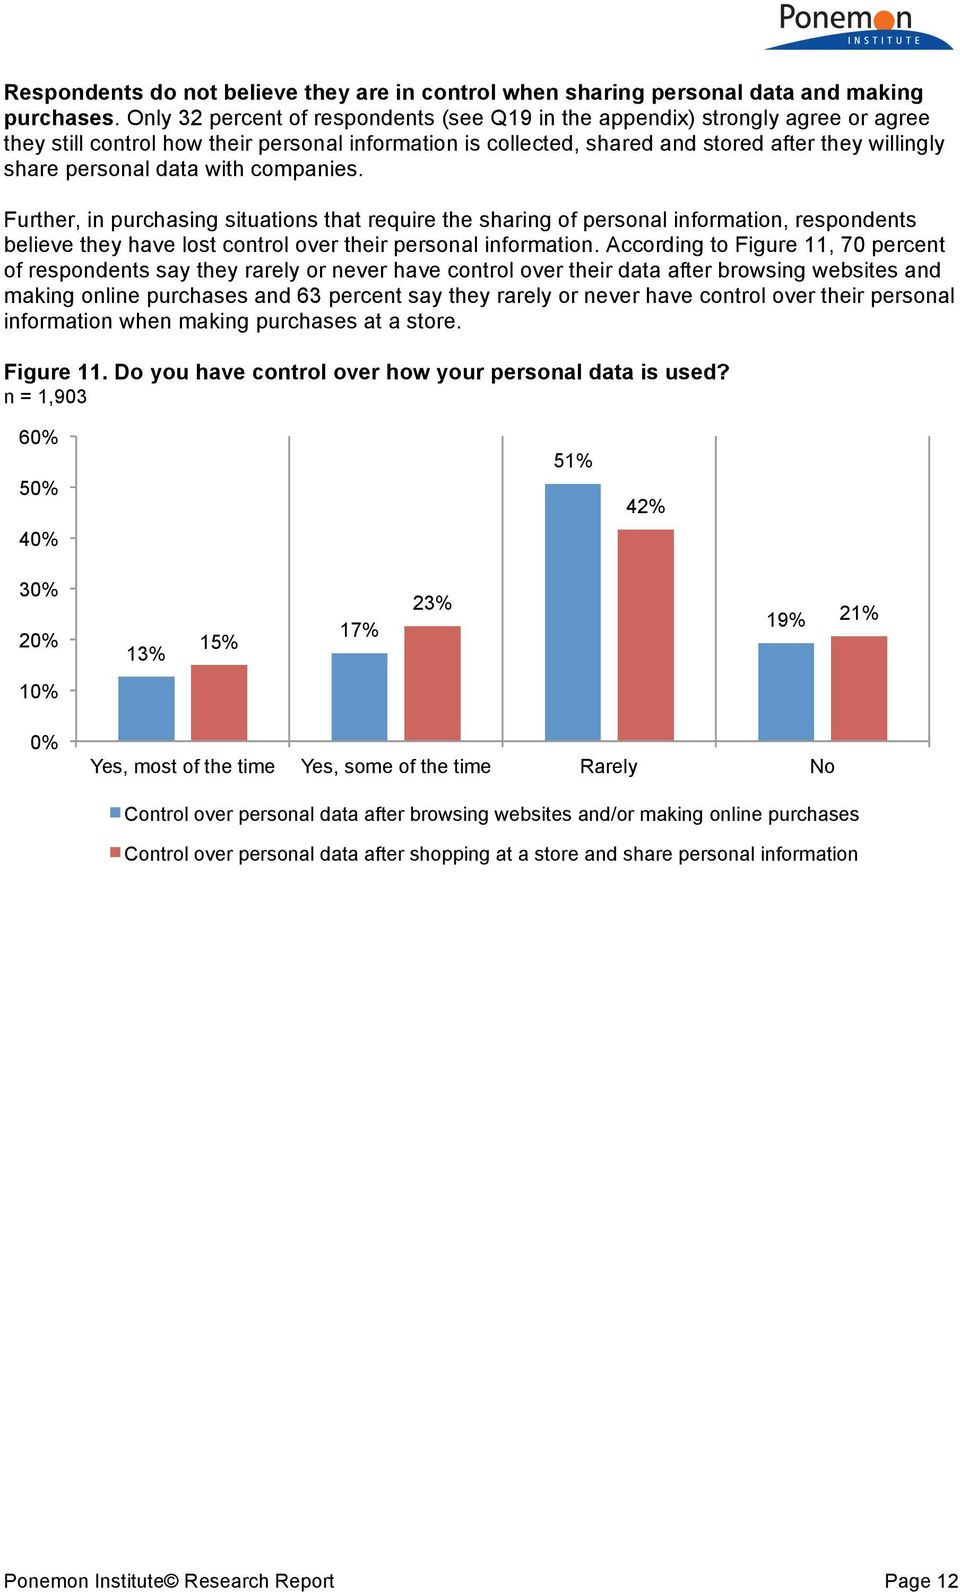 data with companies. Further, in purchasing situations that require the sharing of personal information, respondents believe they have lost control over their personal information.